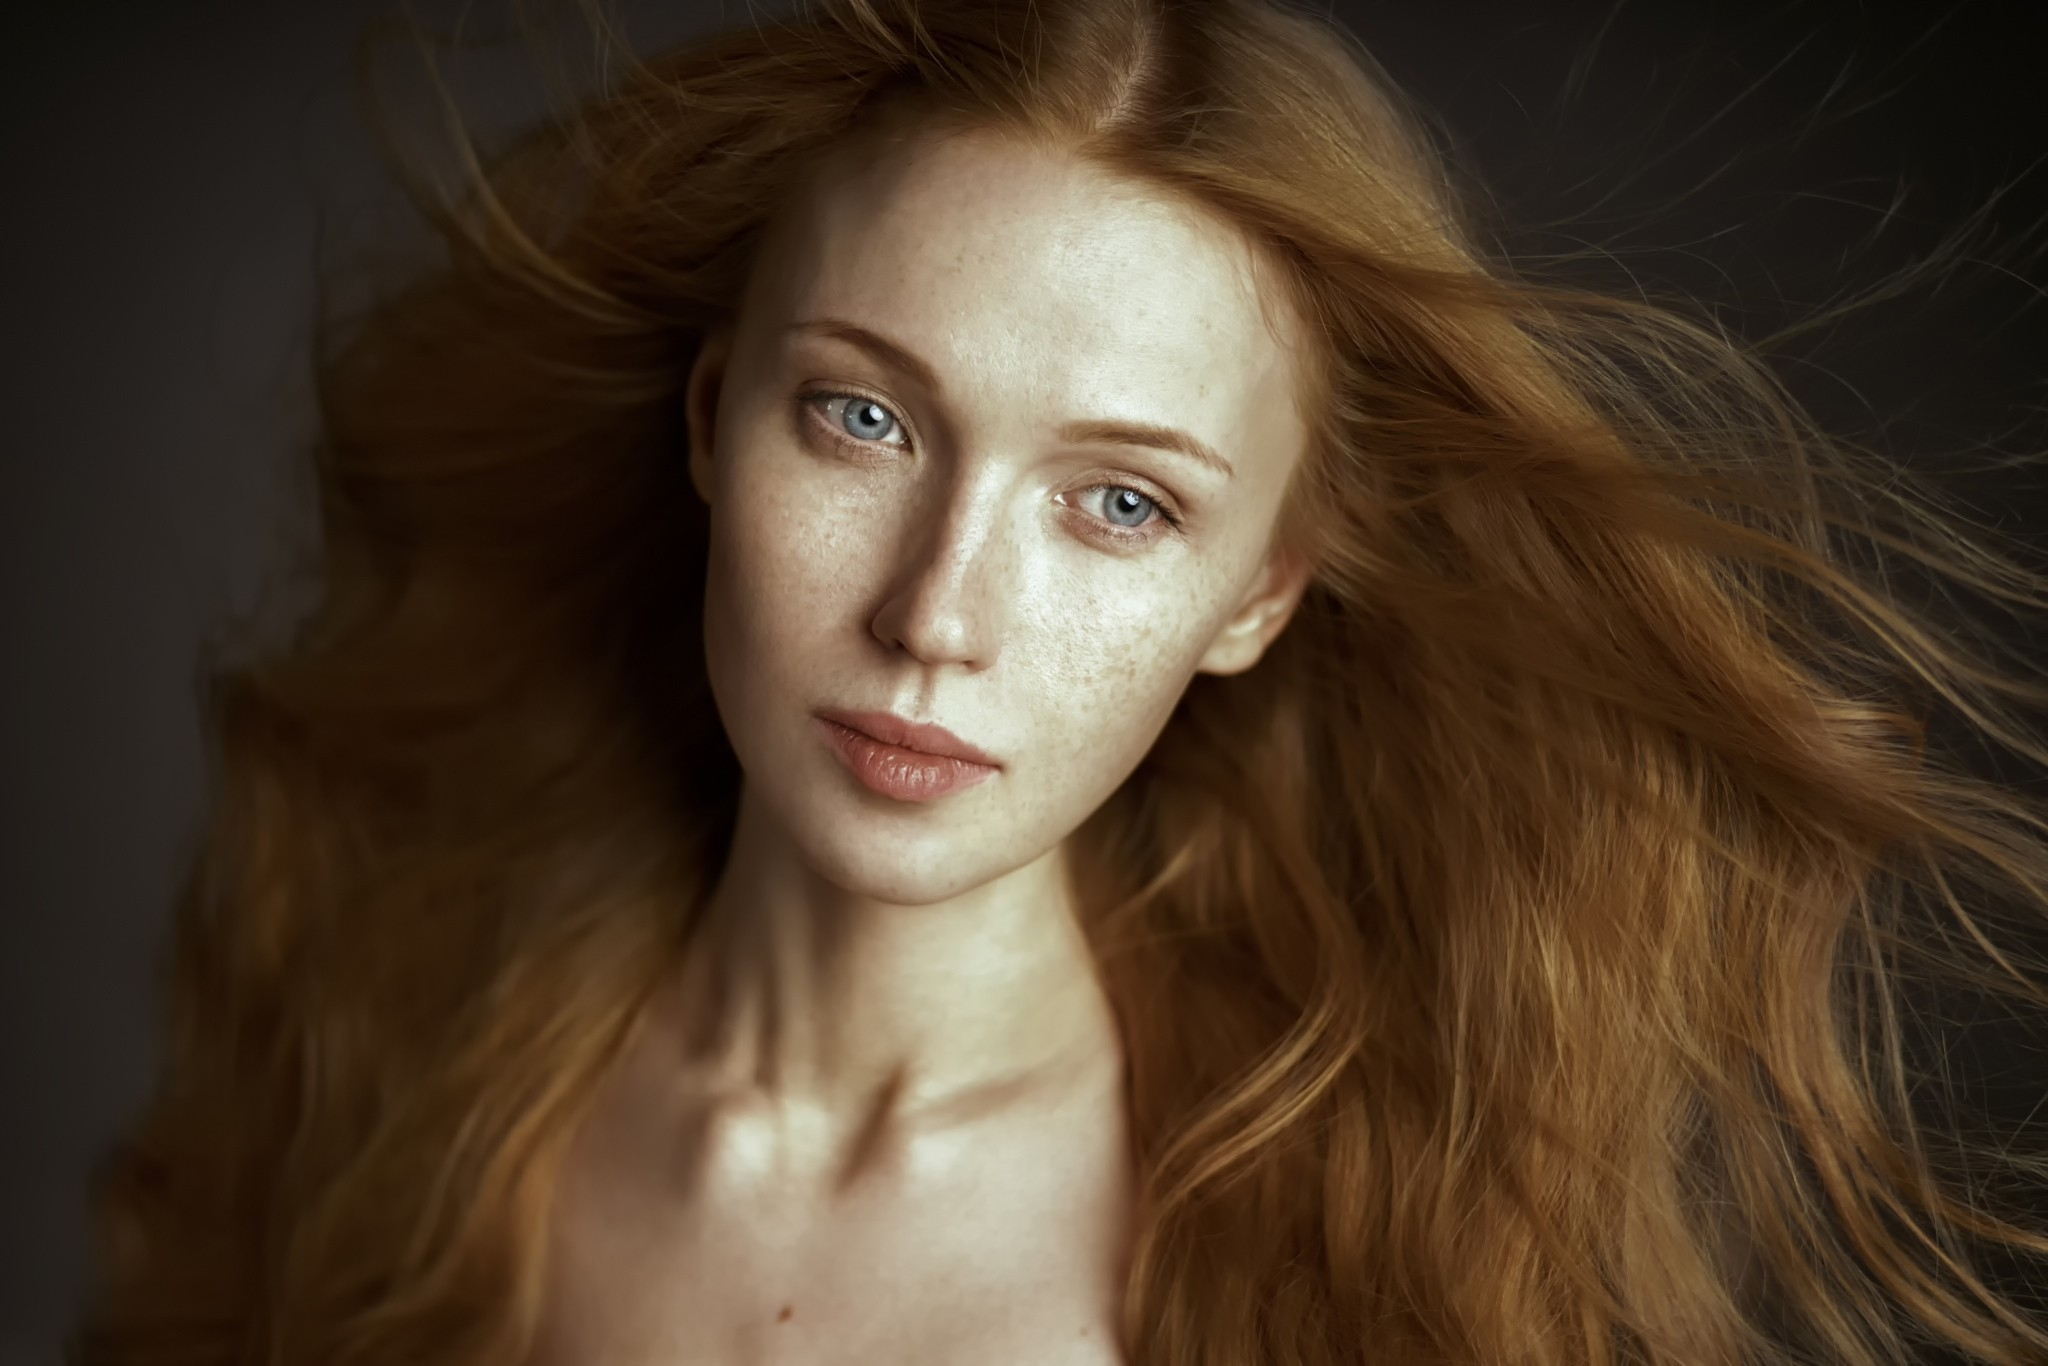 portrait face model redhead women